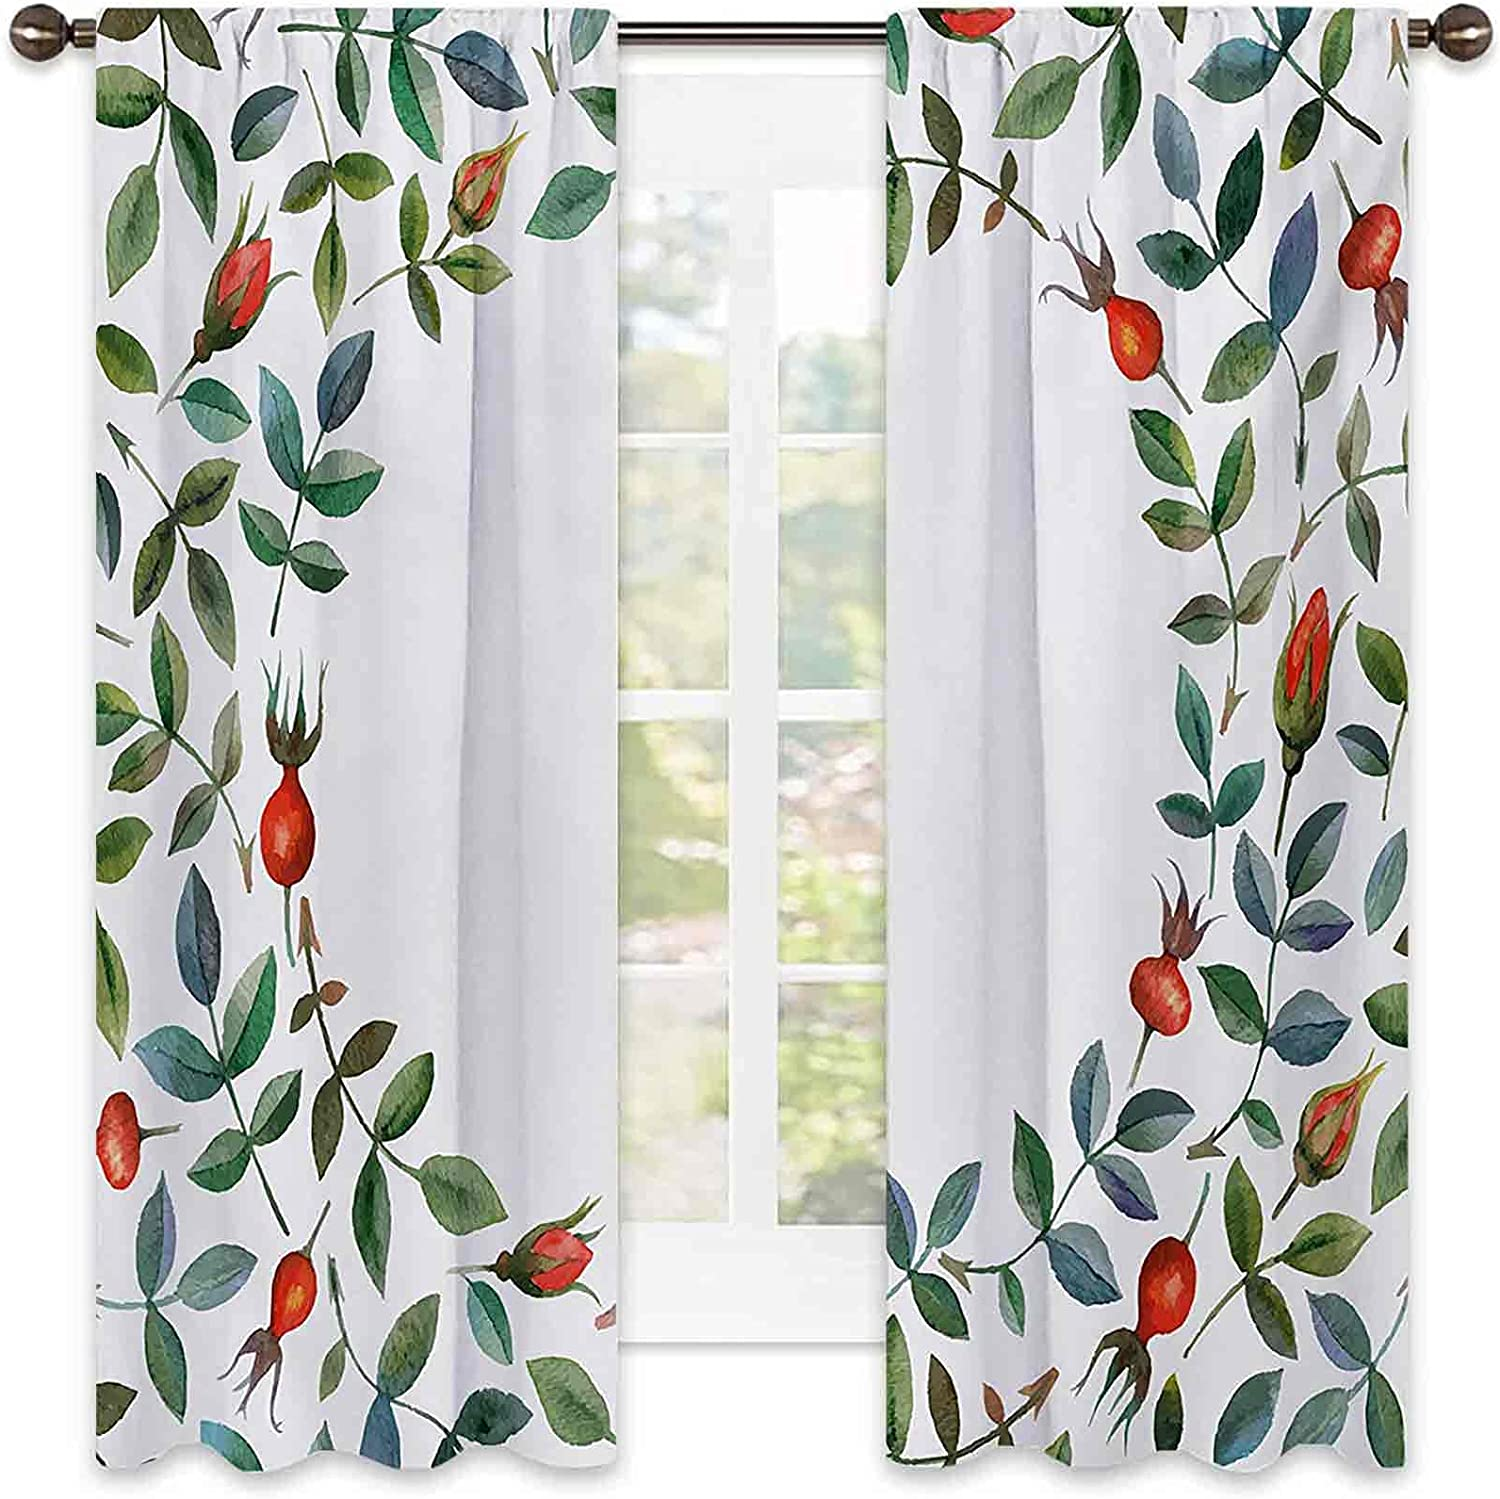 Floral Heat Insulation Curtain Christmas Like Buds 2021 Frame Sales for sale Image